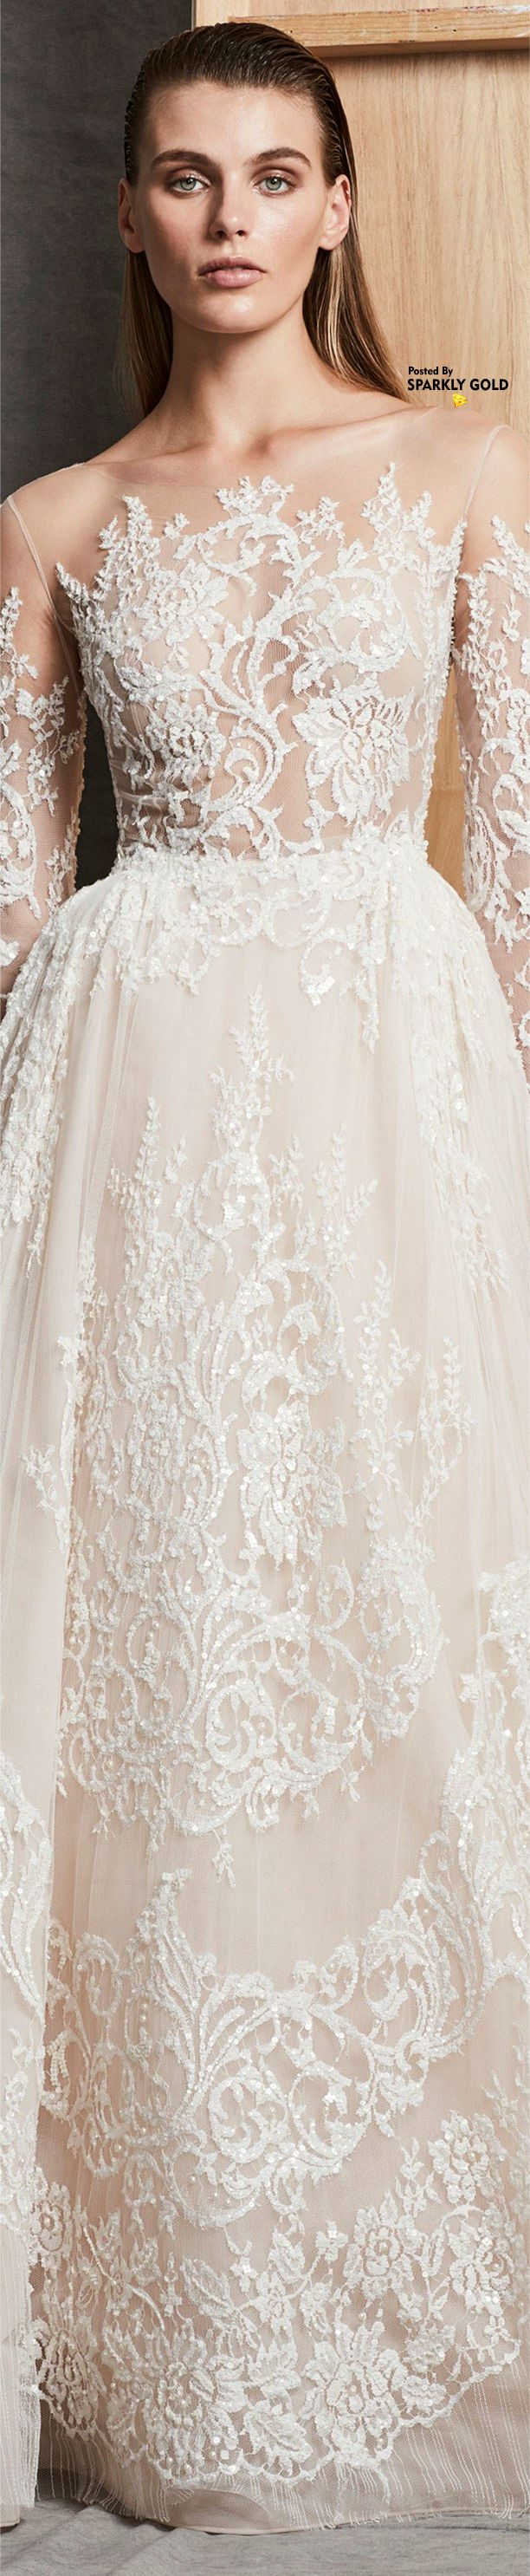 Zuhair murad fall bridal zuhair murad in pinterest